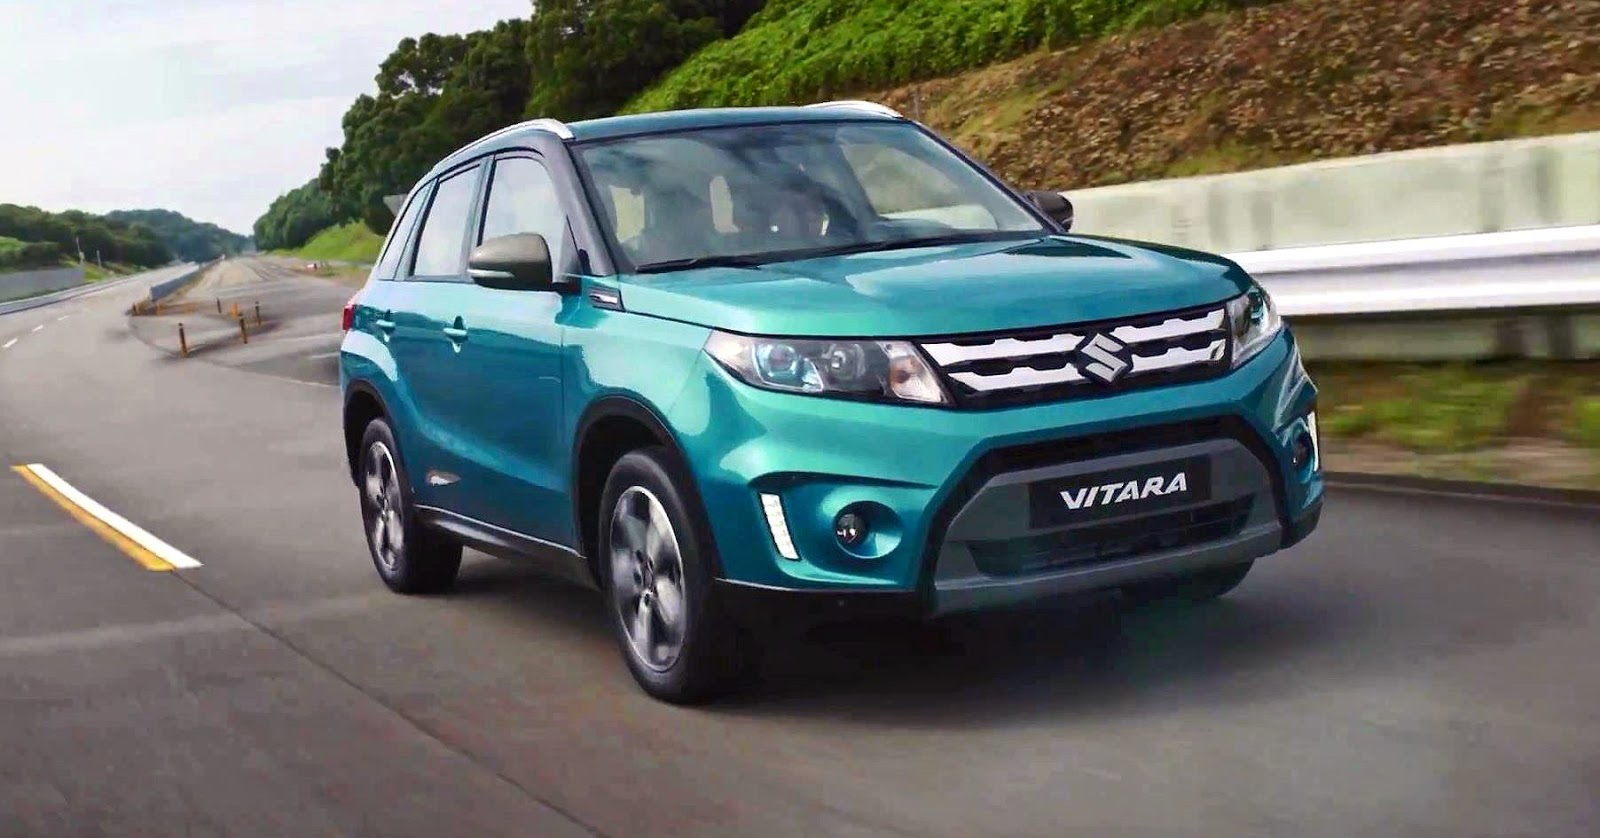 2019 Suzuki Grand Vitara Engine Hybrid Specification